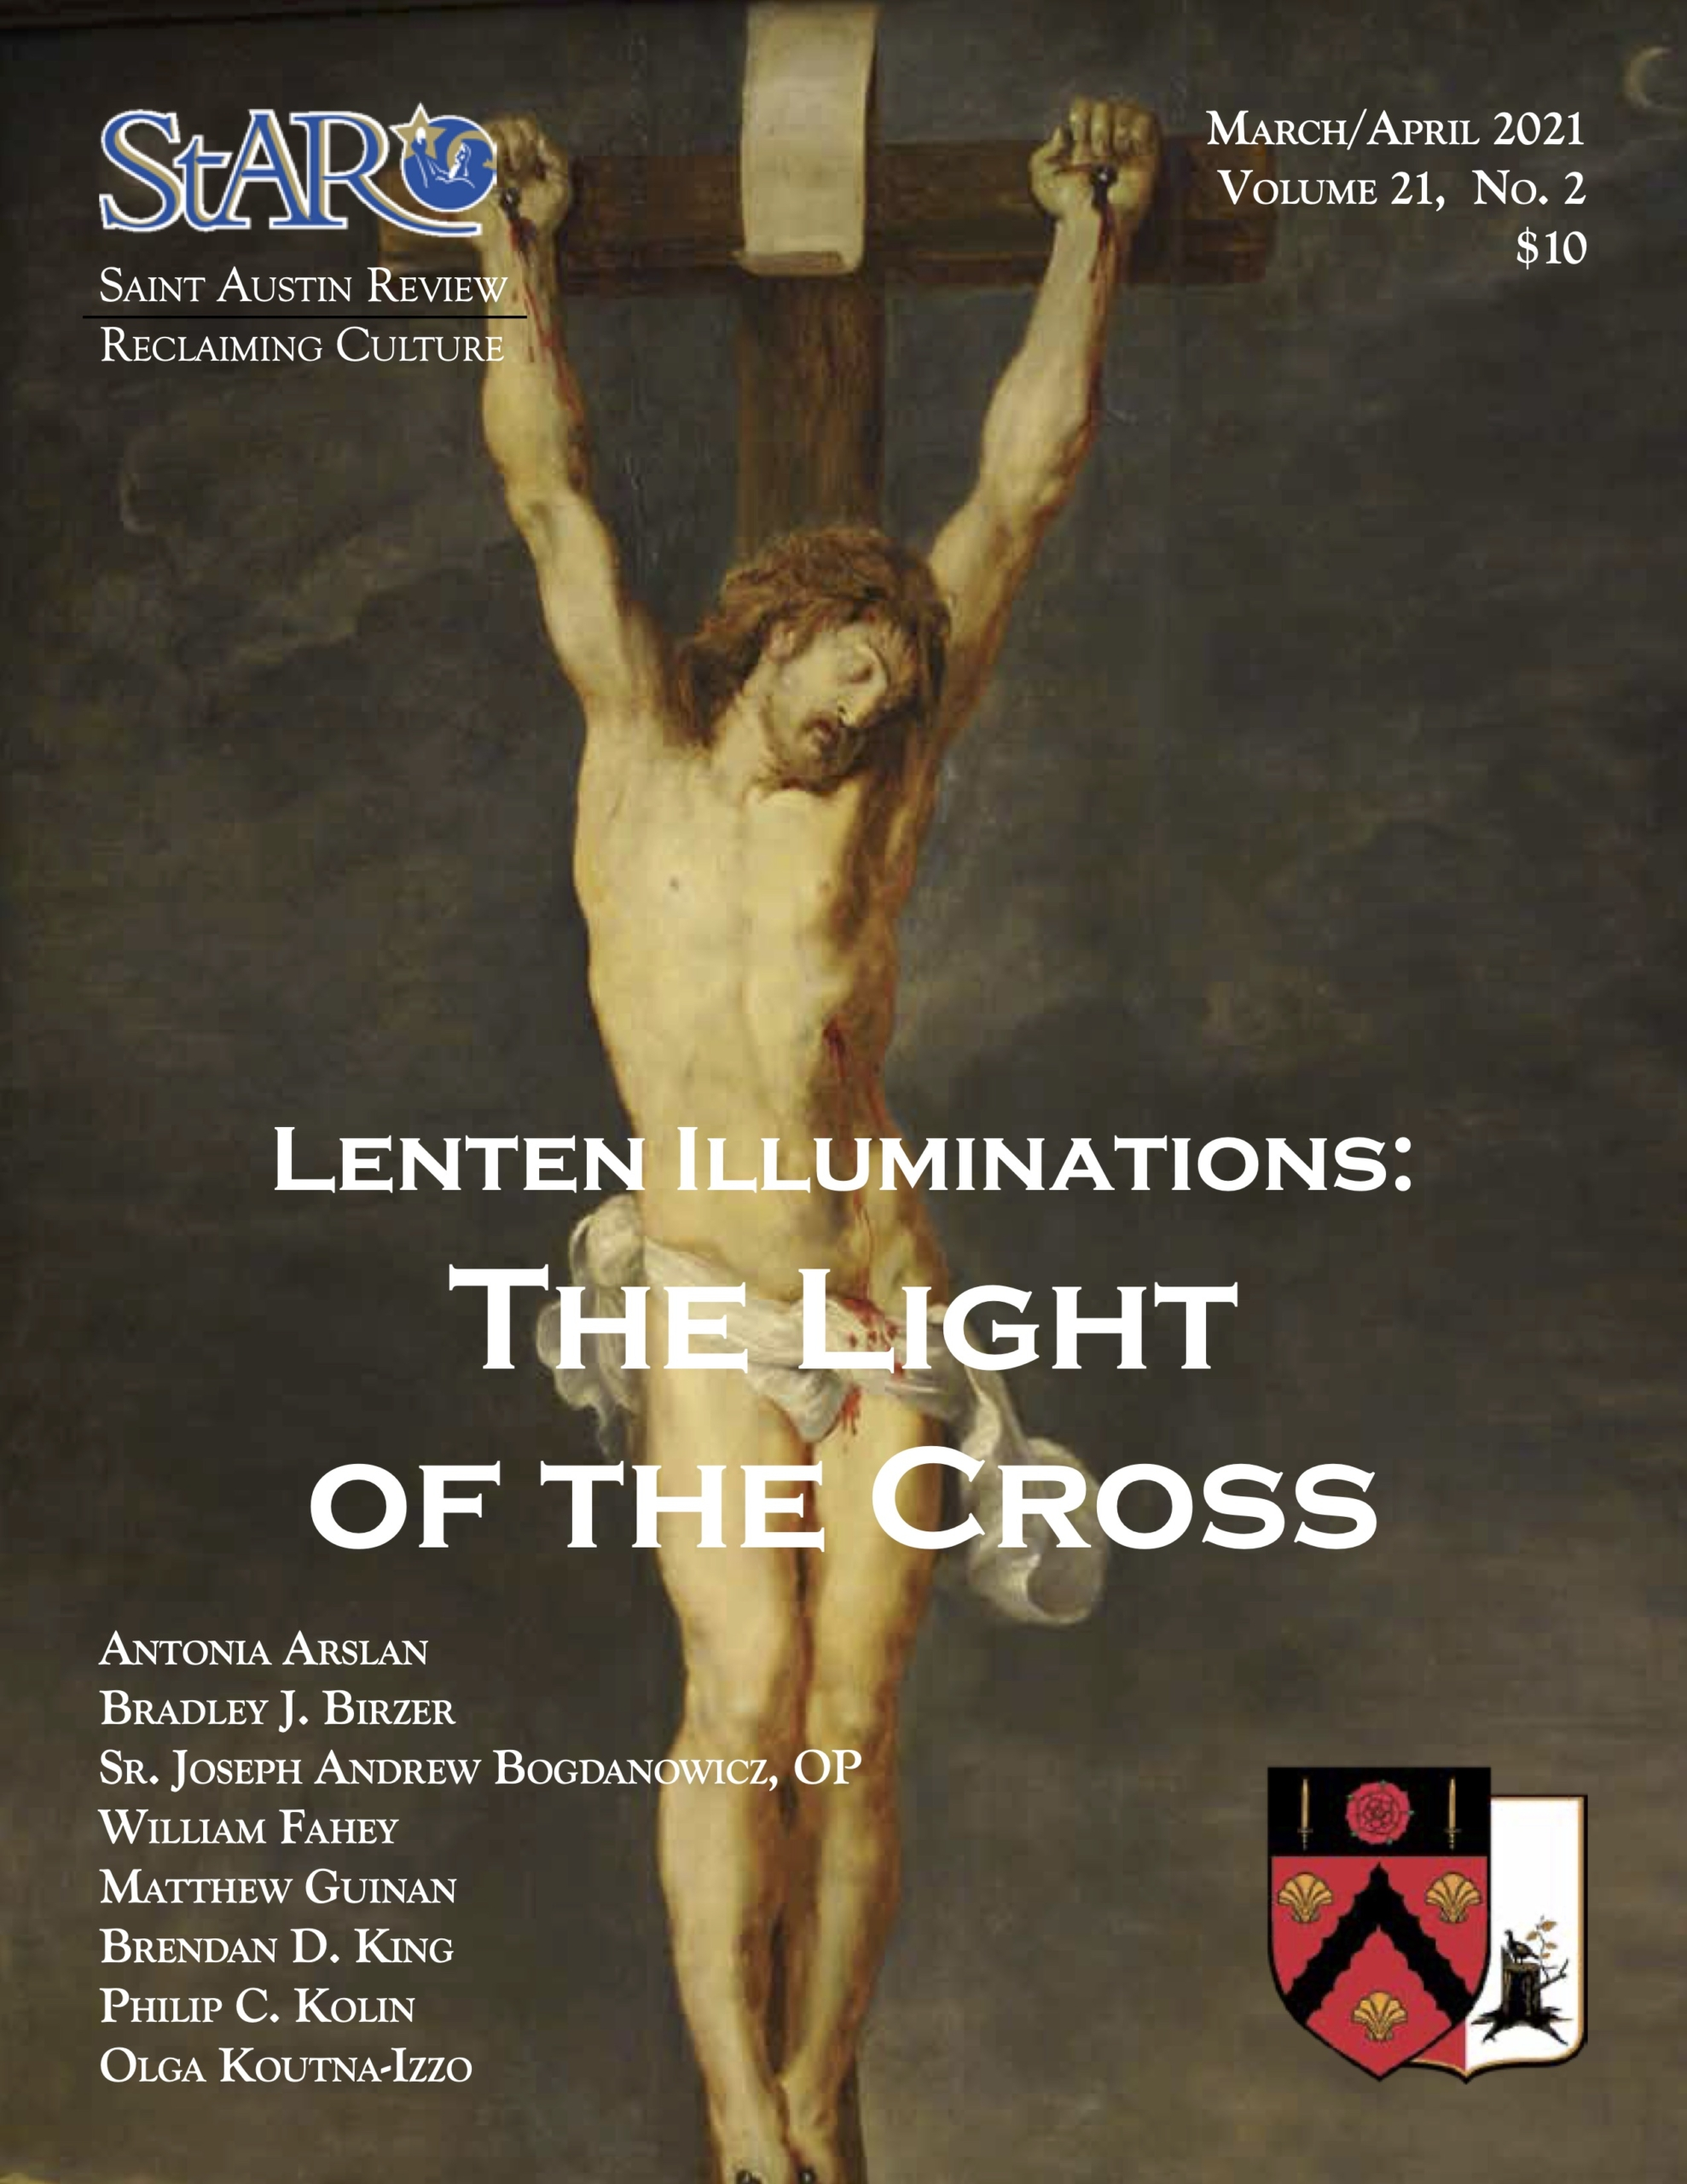 Lenten Illuminations: The Light of the Cross